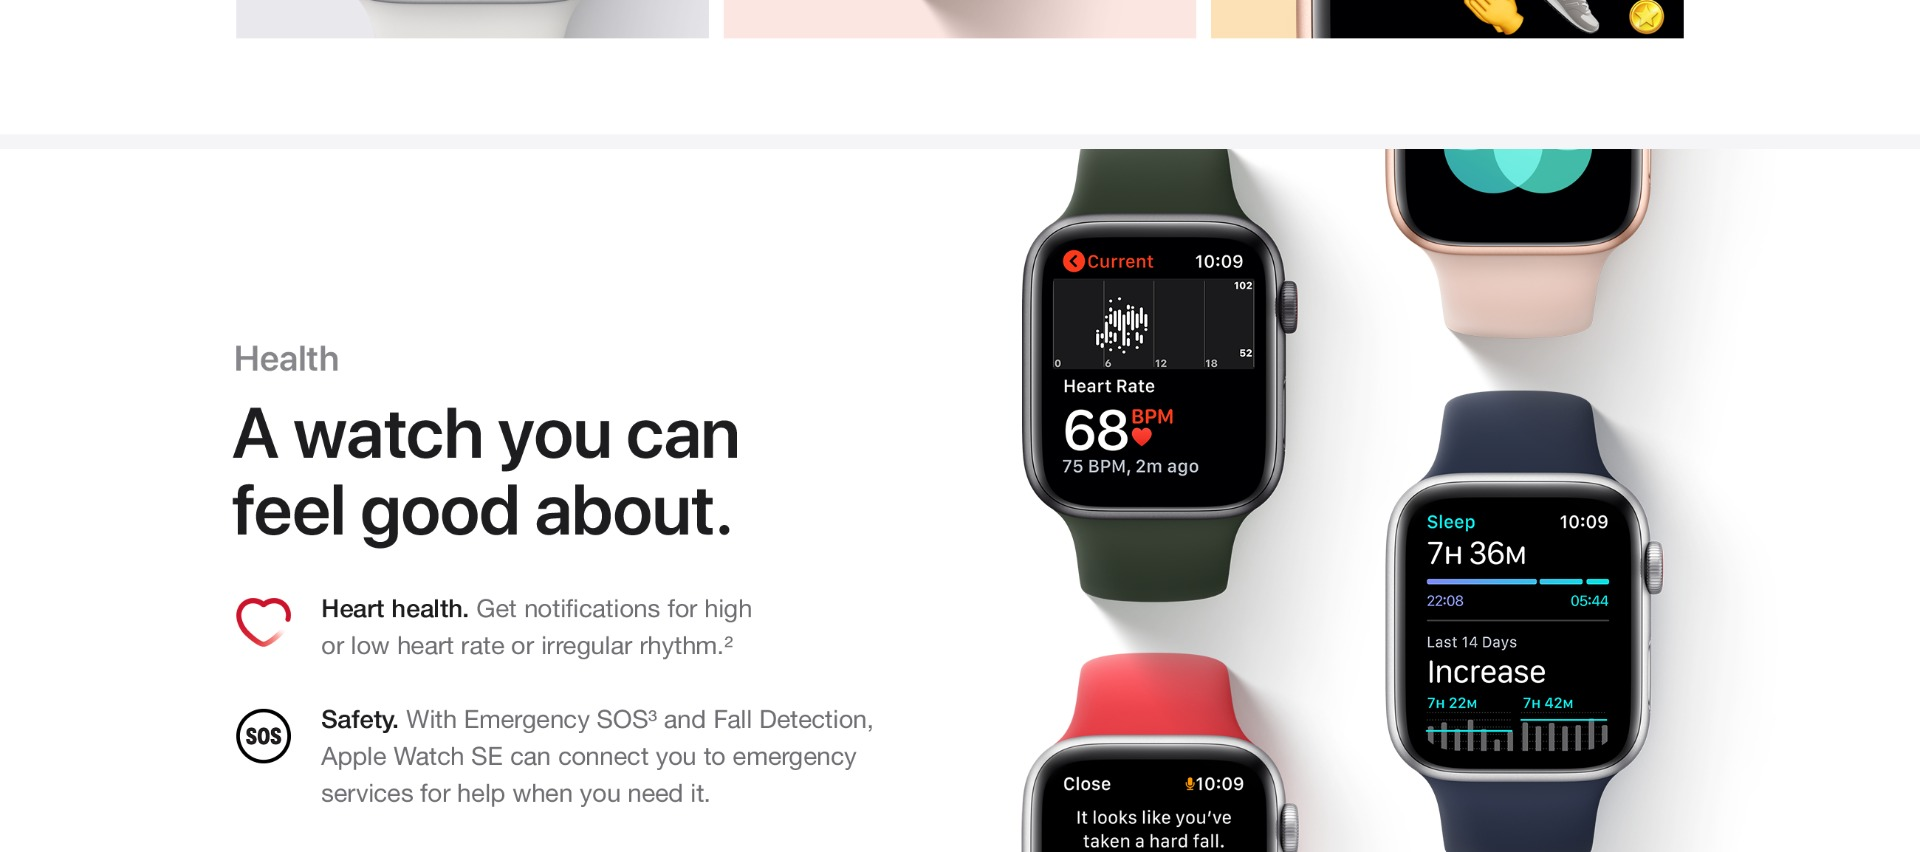 With the introduction of Family Setup, you can now set up and configure an Apple Watch for a child or older person who doesn't have an iPhone (cellular hardware and separate cellular plan required. Check apple.com/uk/watch/cellular for participating network providers and eligibility)7. You can configure the activity to suit kids, with improved tracking for younger peoples workouts and also limit functionality during school hours to cut down on distractions. Meanwhile features like Fall Detection and Emergency SOS make for peace of mind when an older family member is wearing an Apple Watch. Family members can share their location in the Find My app with notifications for when they get home or aren't where they are expected to be.